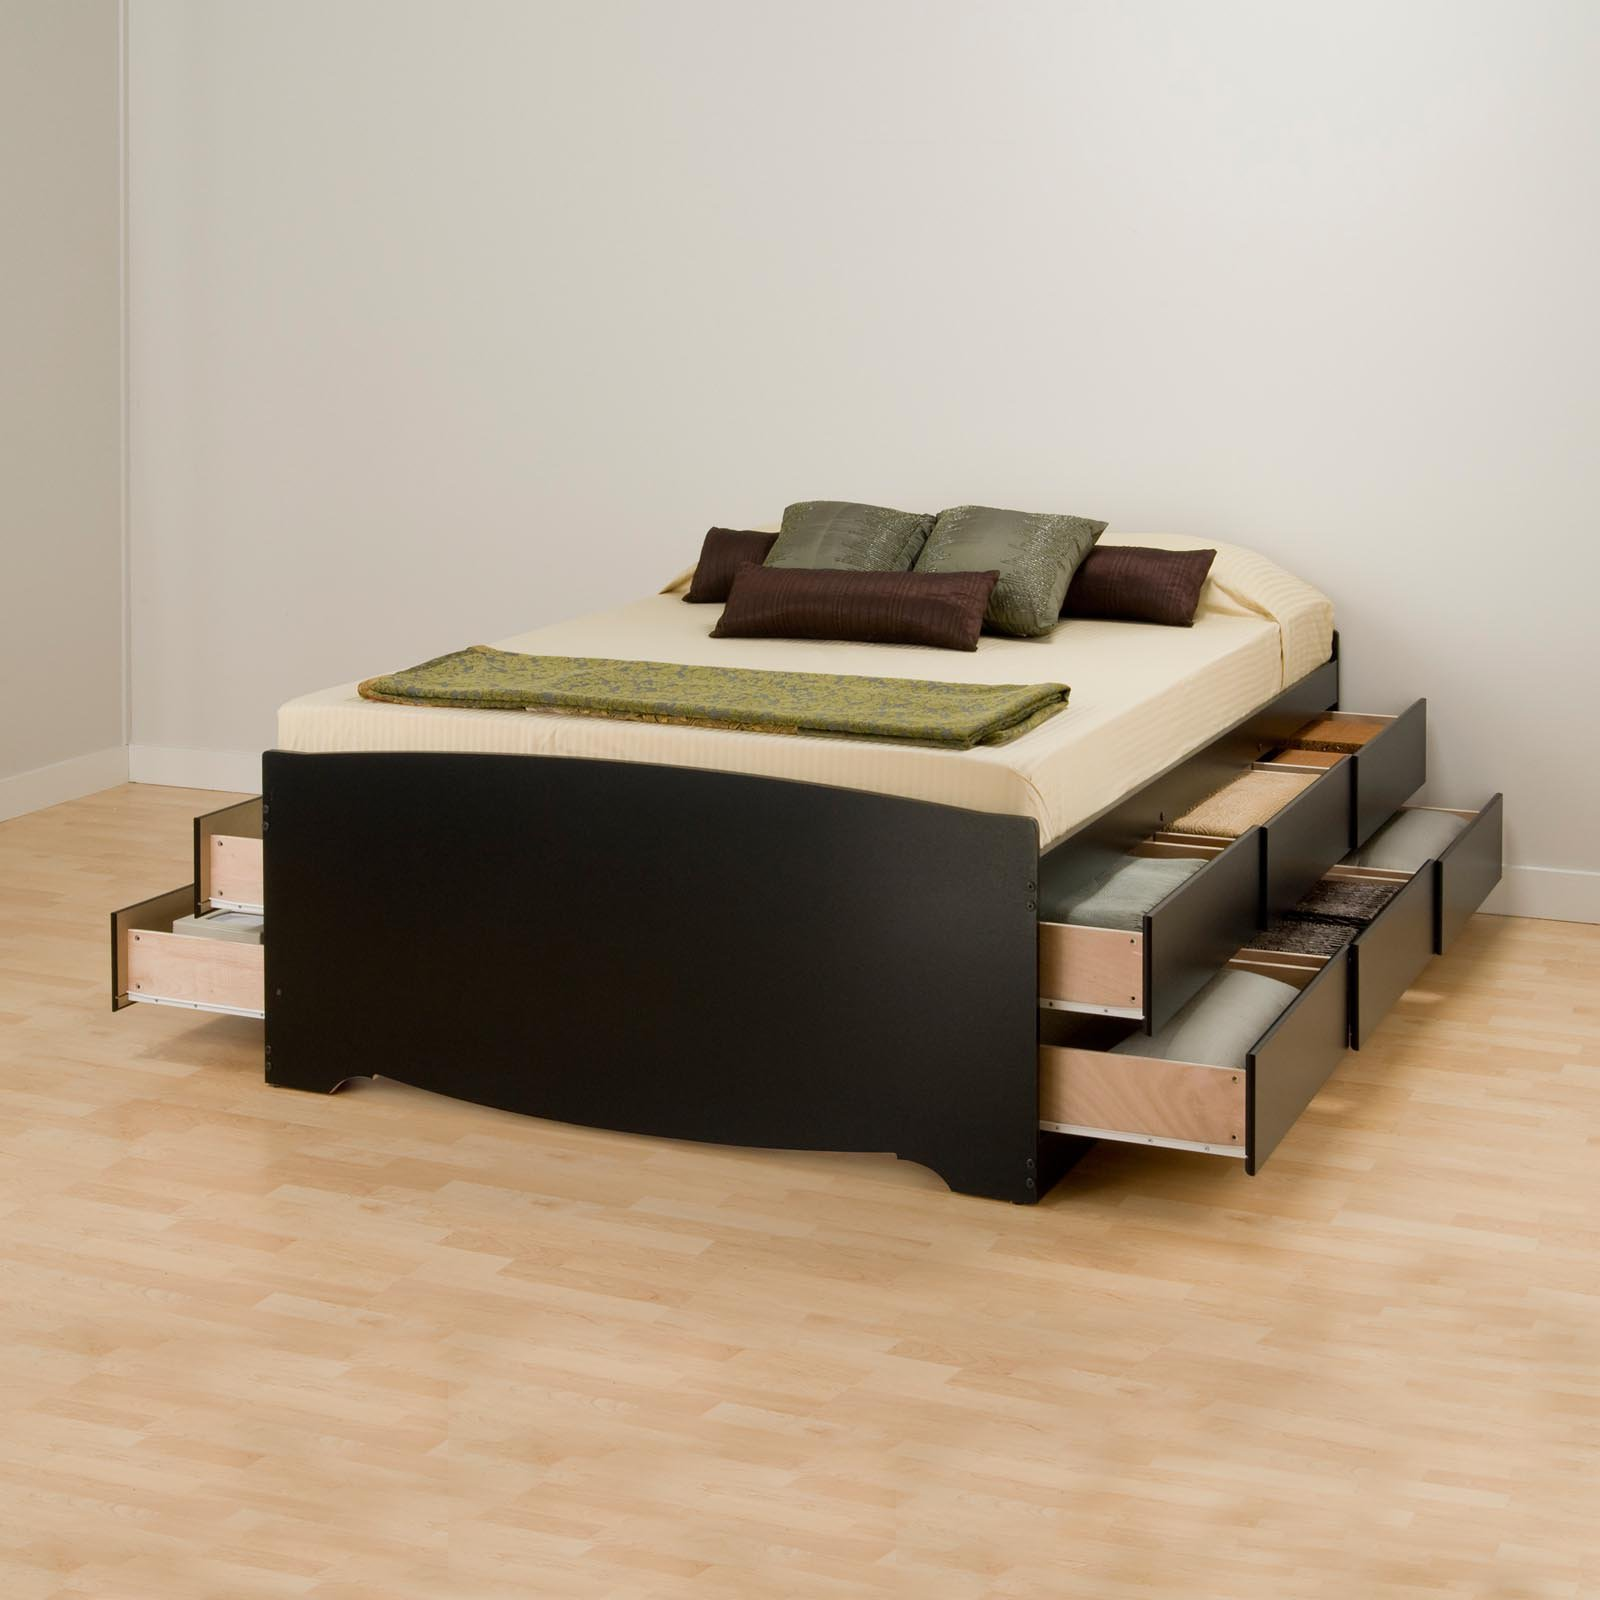 Maximize your bedroom space with platform bed with storage